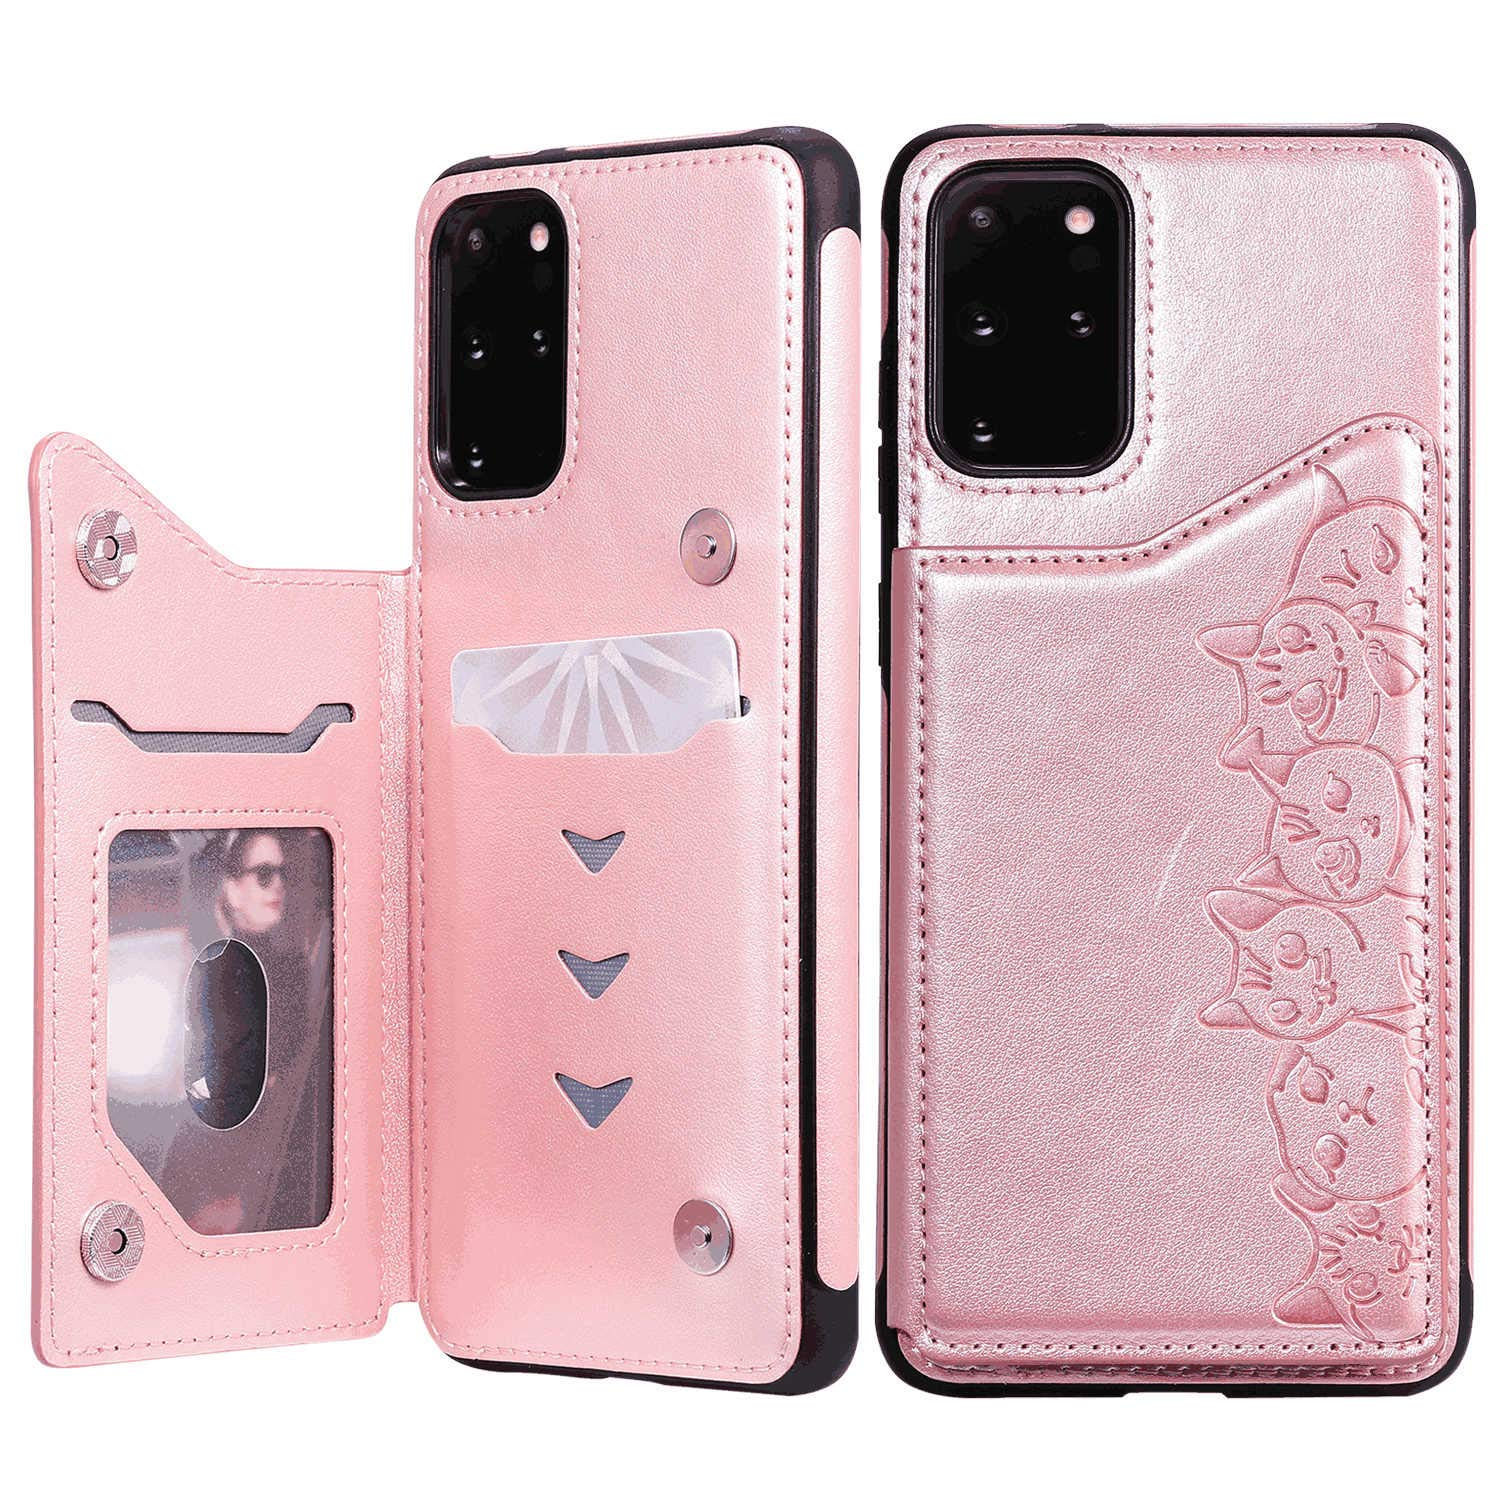 Flip Case Fit for Samsung Galaxy S10 5G Card Holders Extra-Shockproof Kickstand Leather Cover Wallet for Samsung Galaxy S10 5G